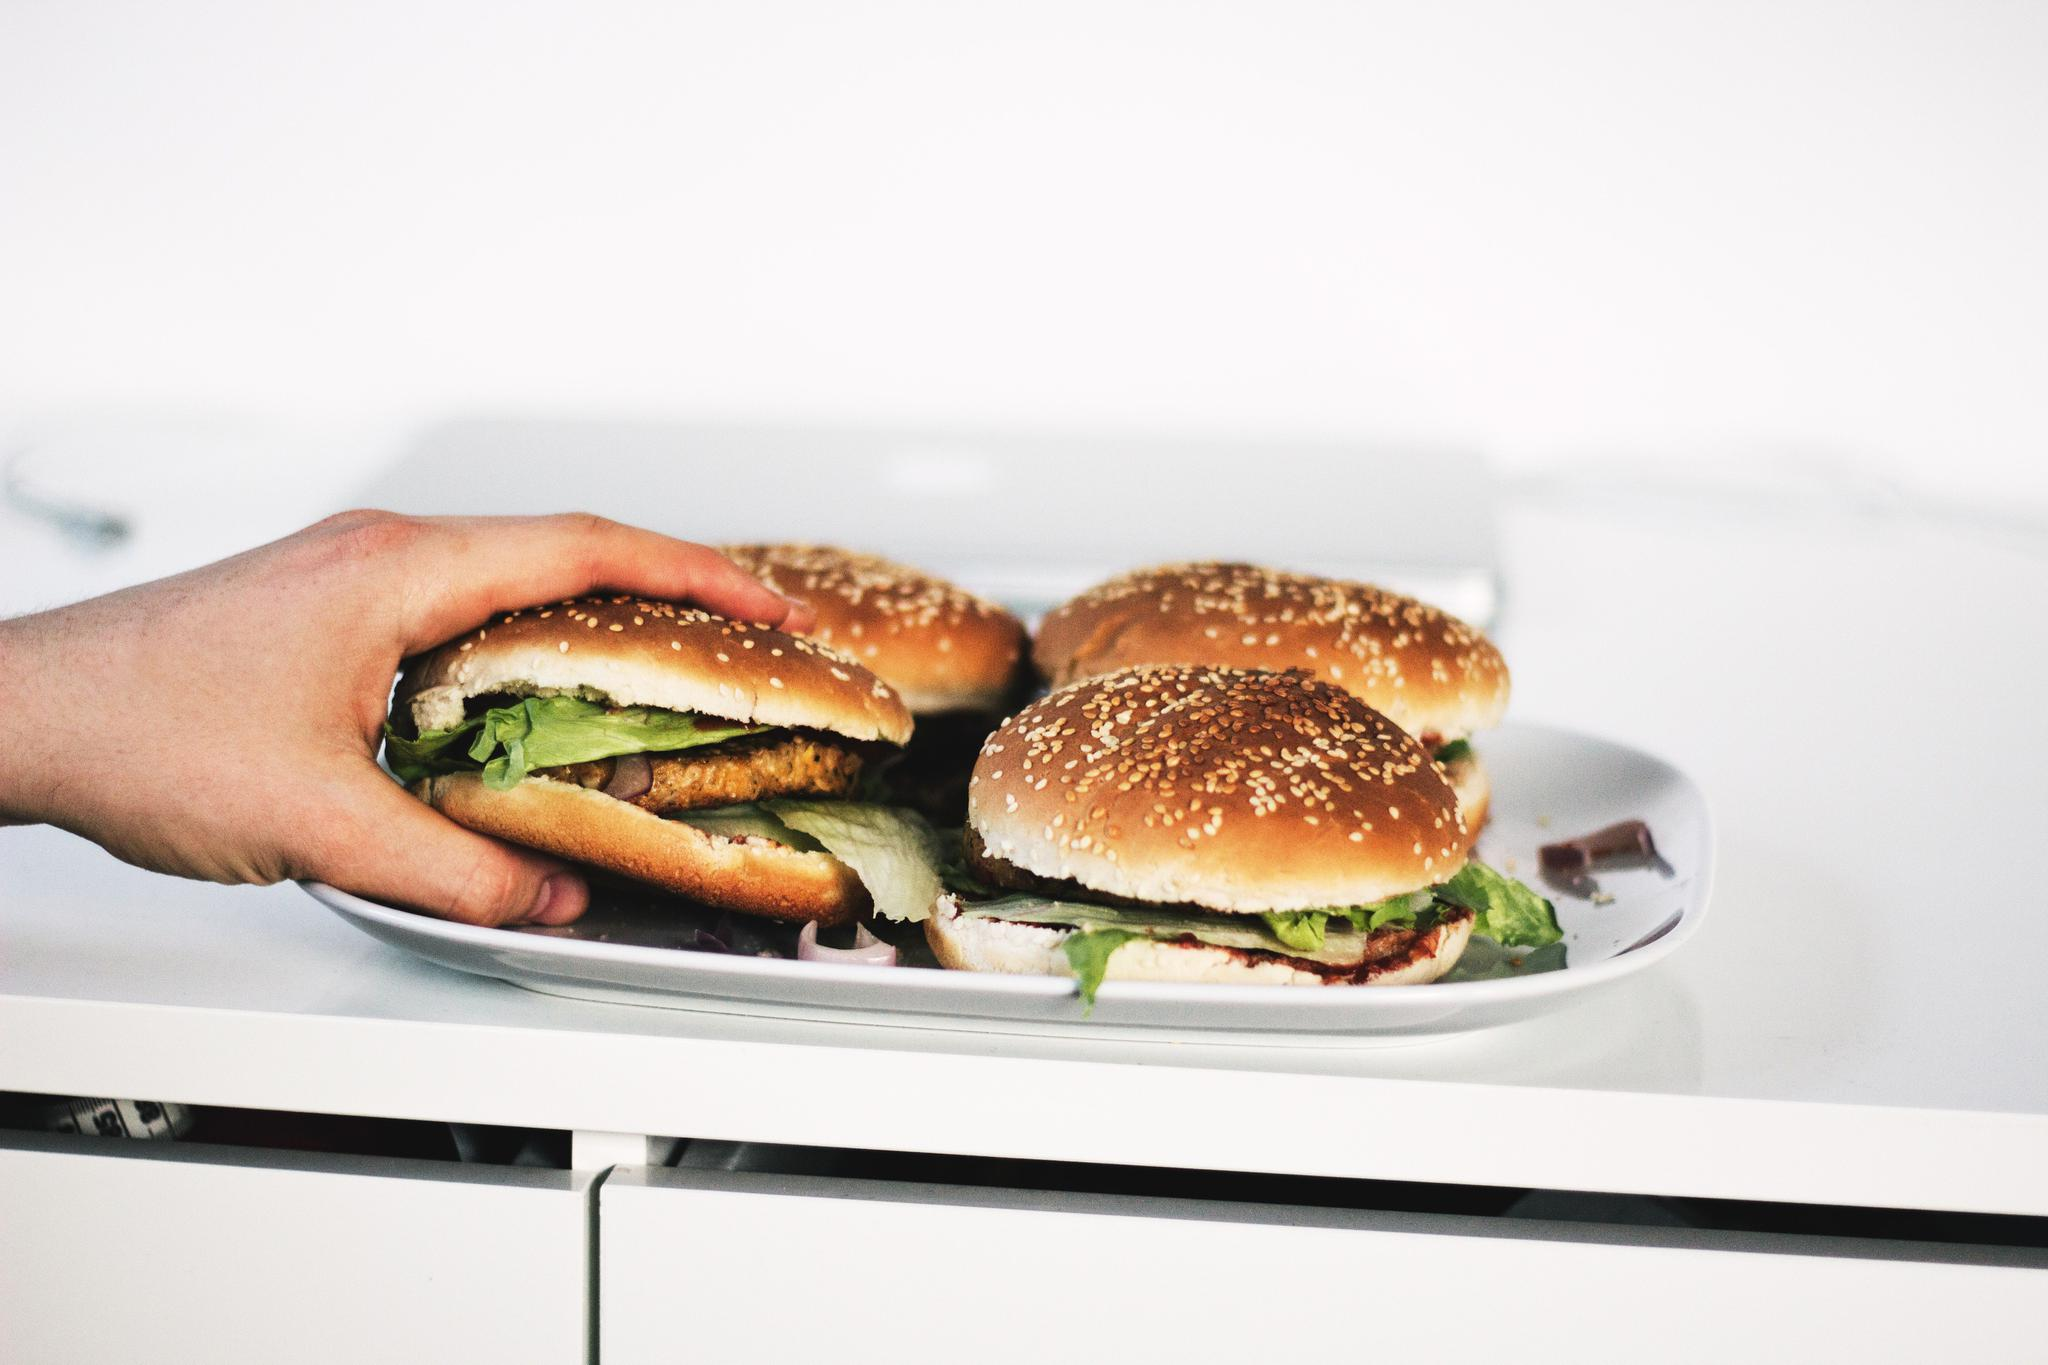 Sesame seed buns are hazardous for more people than previously thought